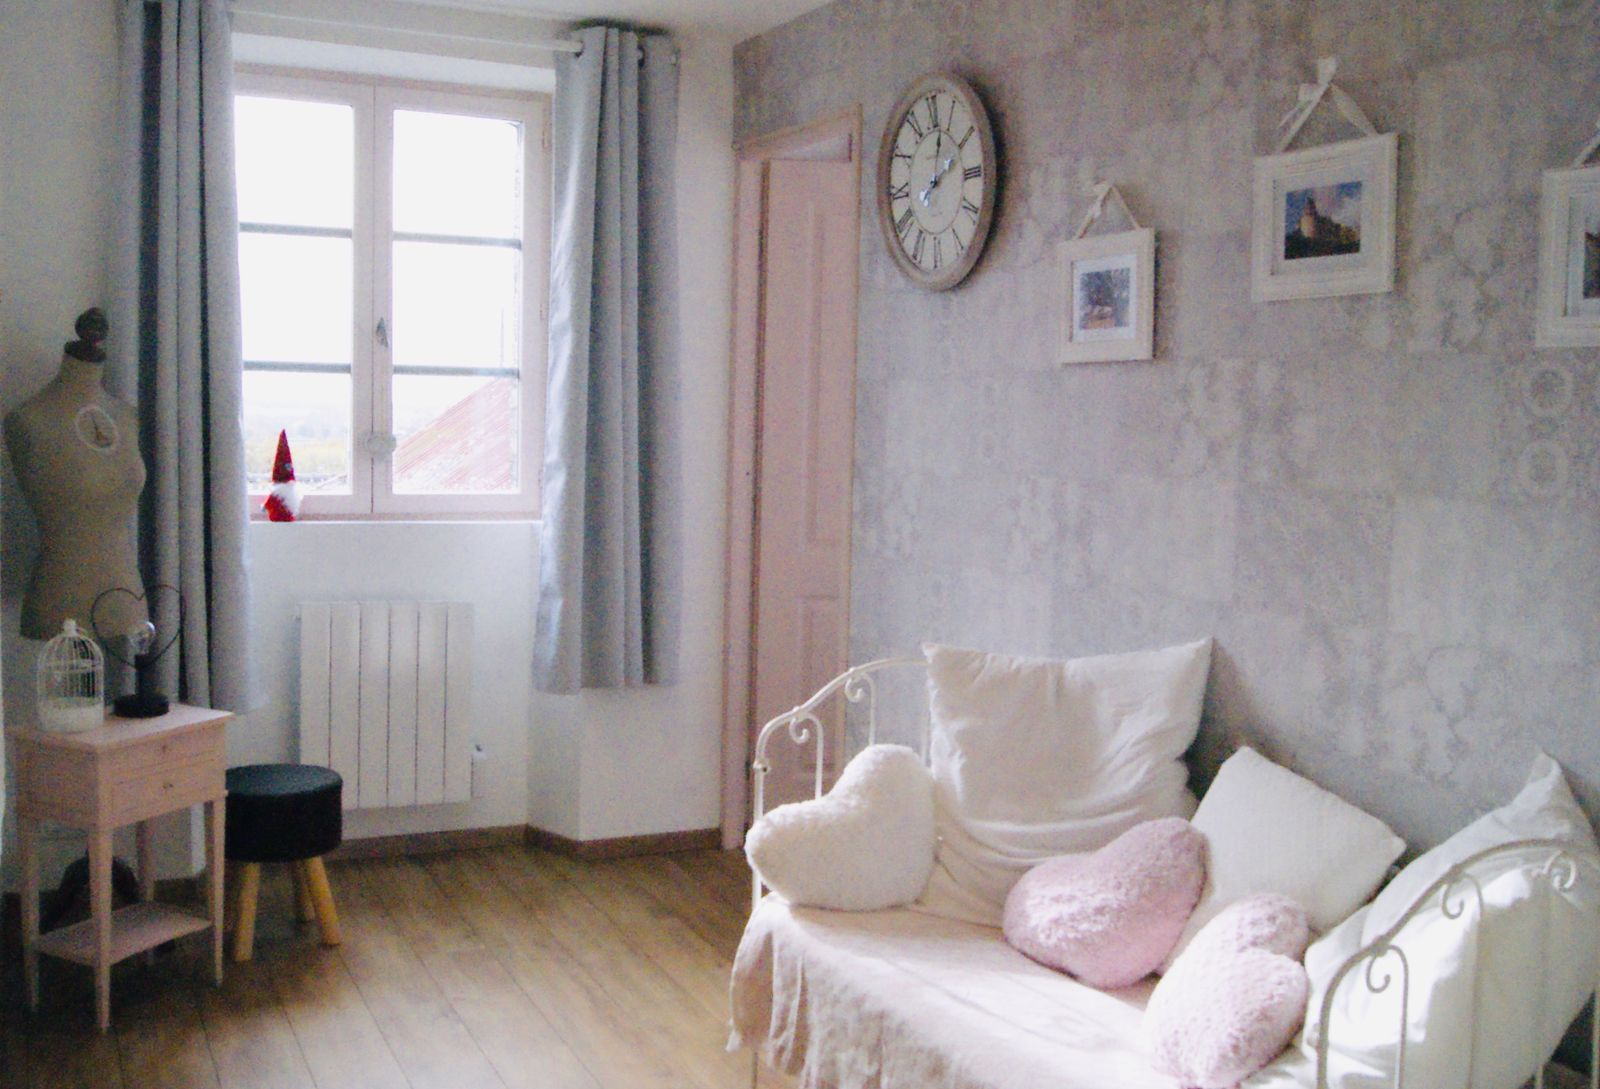 Le palier girly, shabby chic -Lys des Champs ; Sainte Suzanne